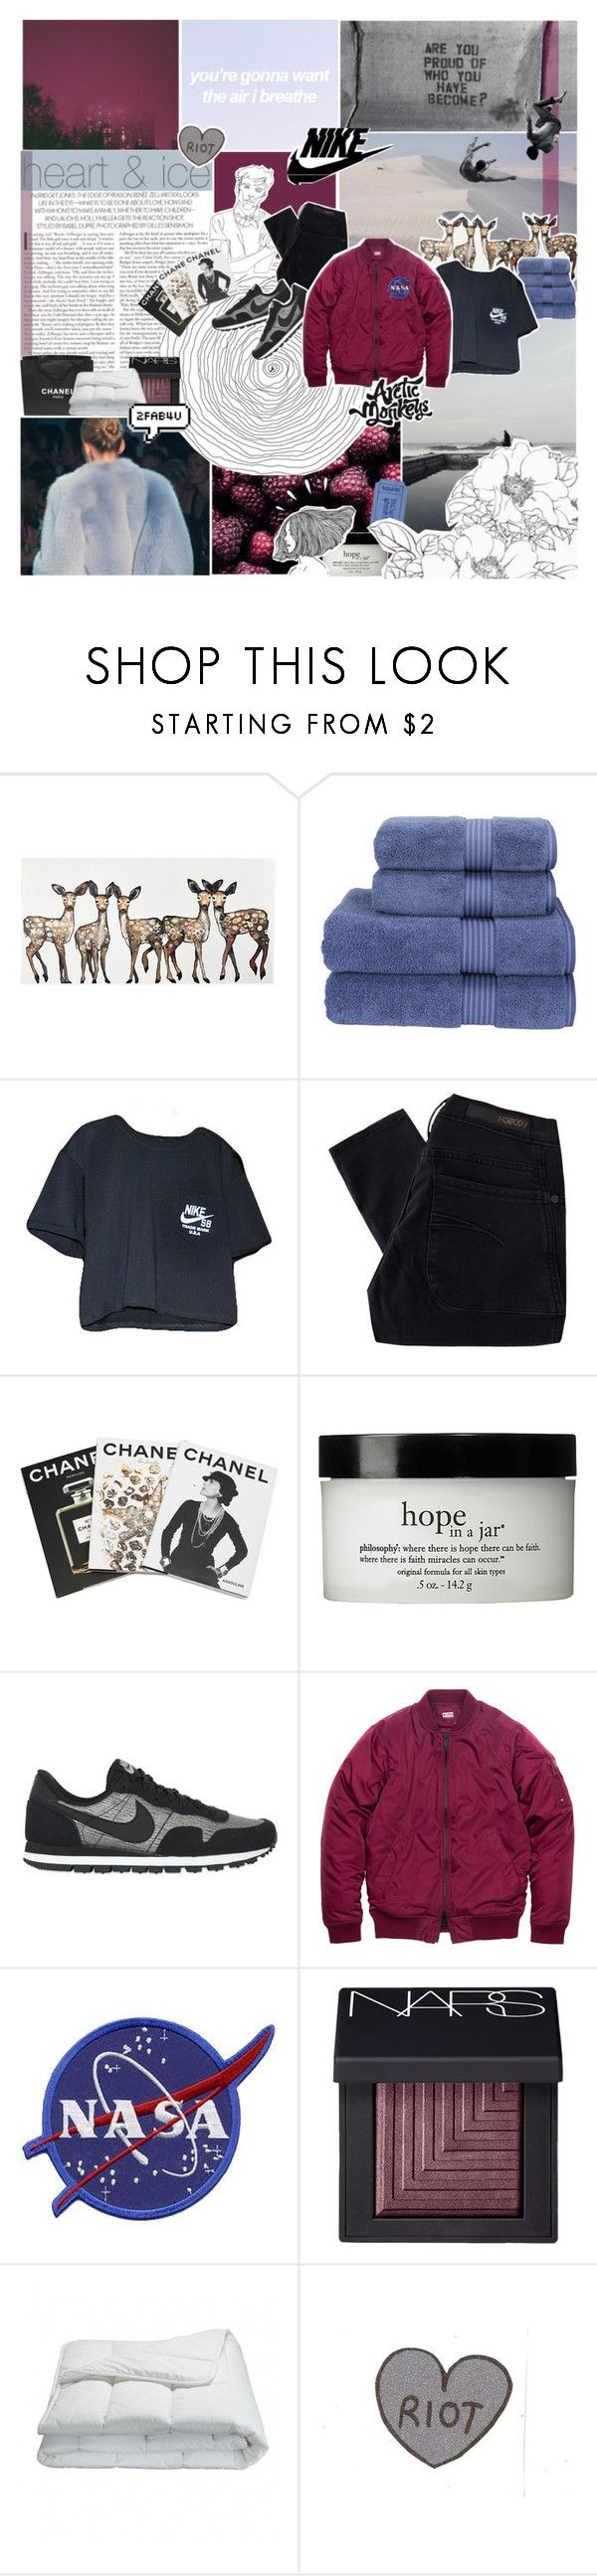 """""""the air diving i my lungs"""" by nanarachel ❤ liked on Polyvore featuring Christy, NIKE, Nobody Denim, Assouline Publishing, philosophy, NARS Cosmetics, Chanel, Frette, Old Navy and women's clothing"""